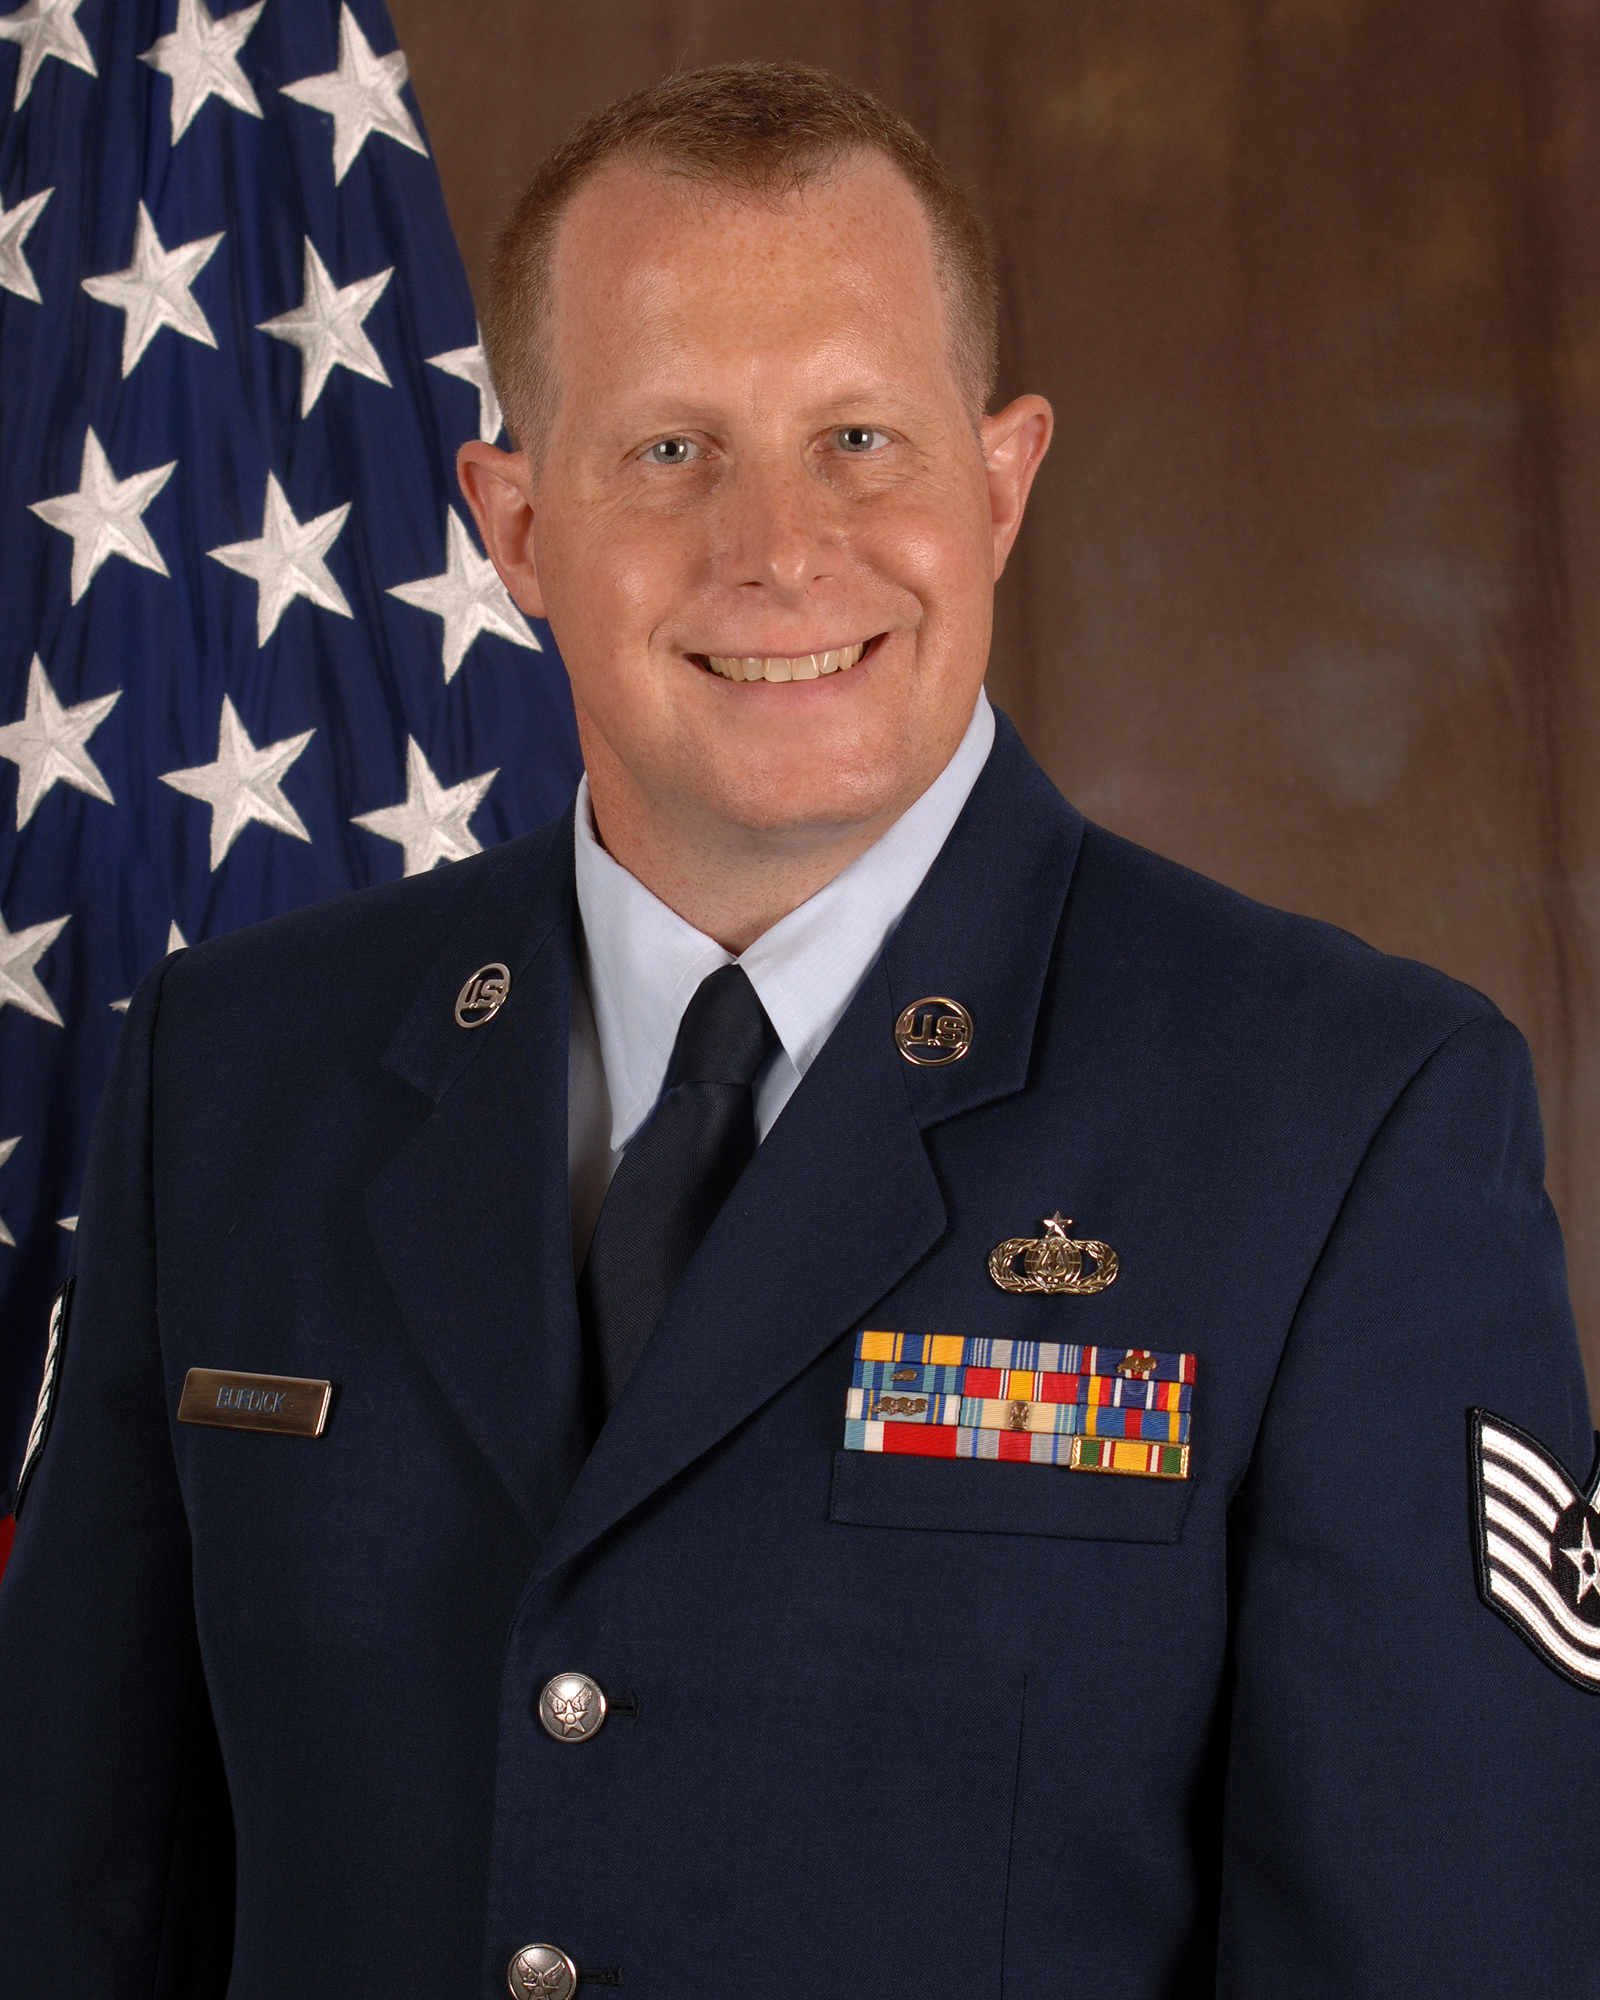 Master Sergeant Steve Burdick, Superintendent of the Air National Guard Band of the South